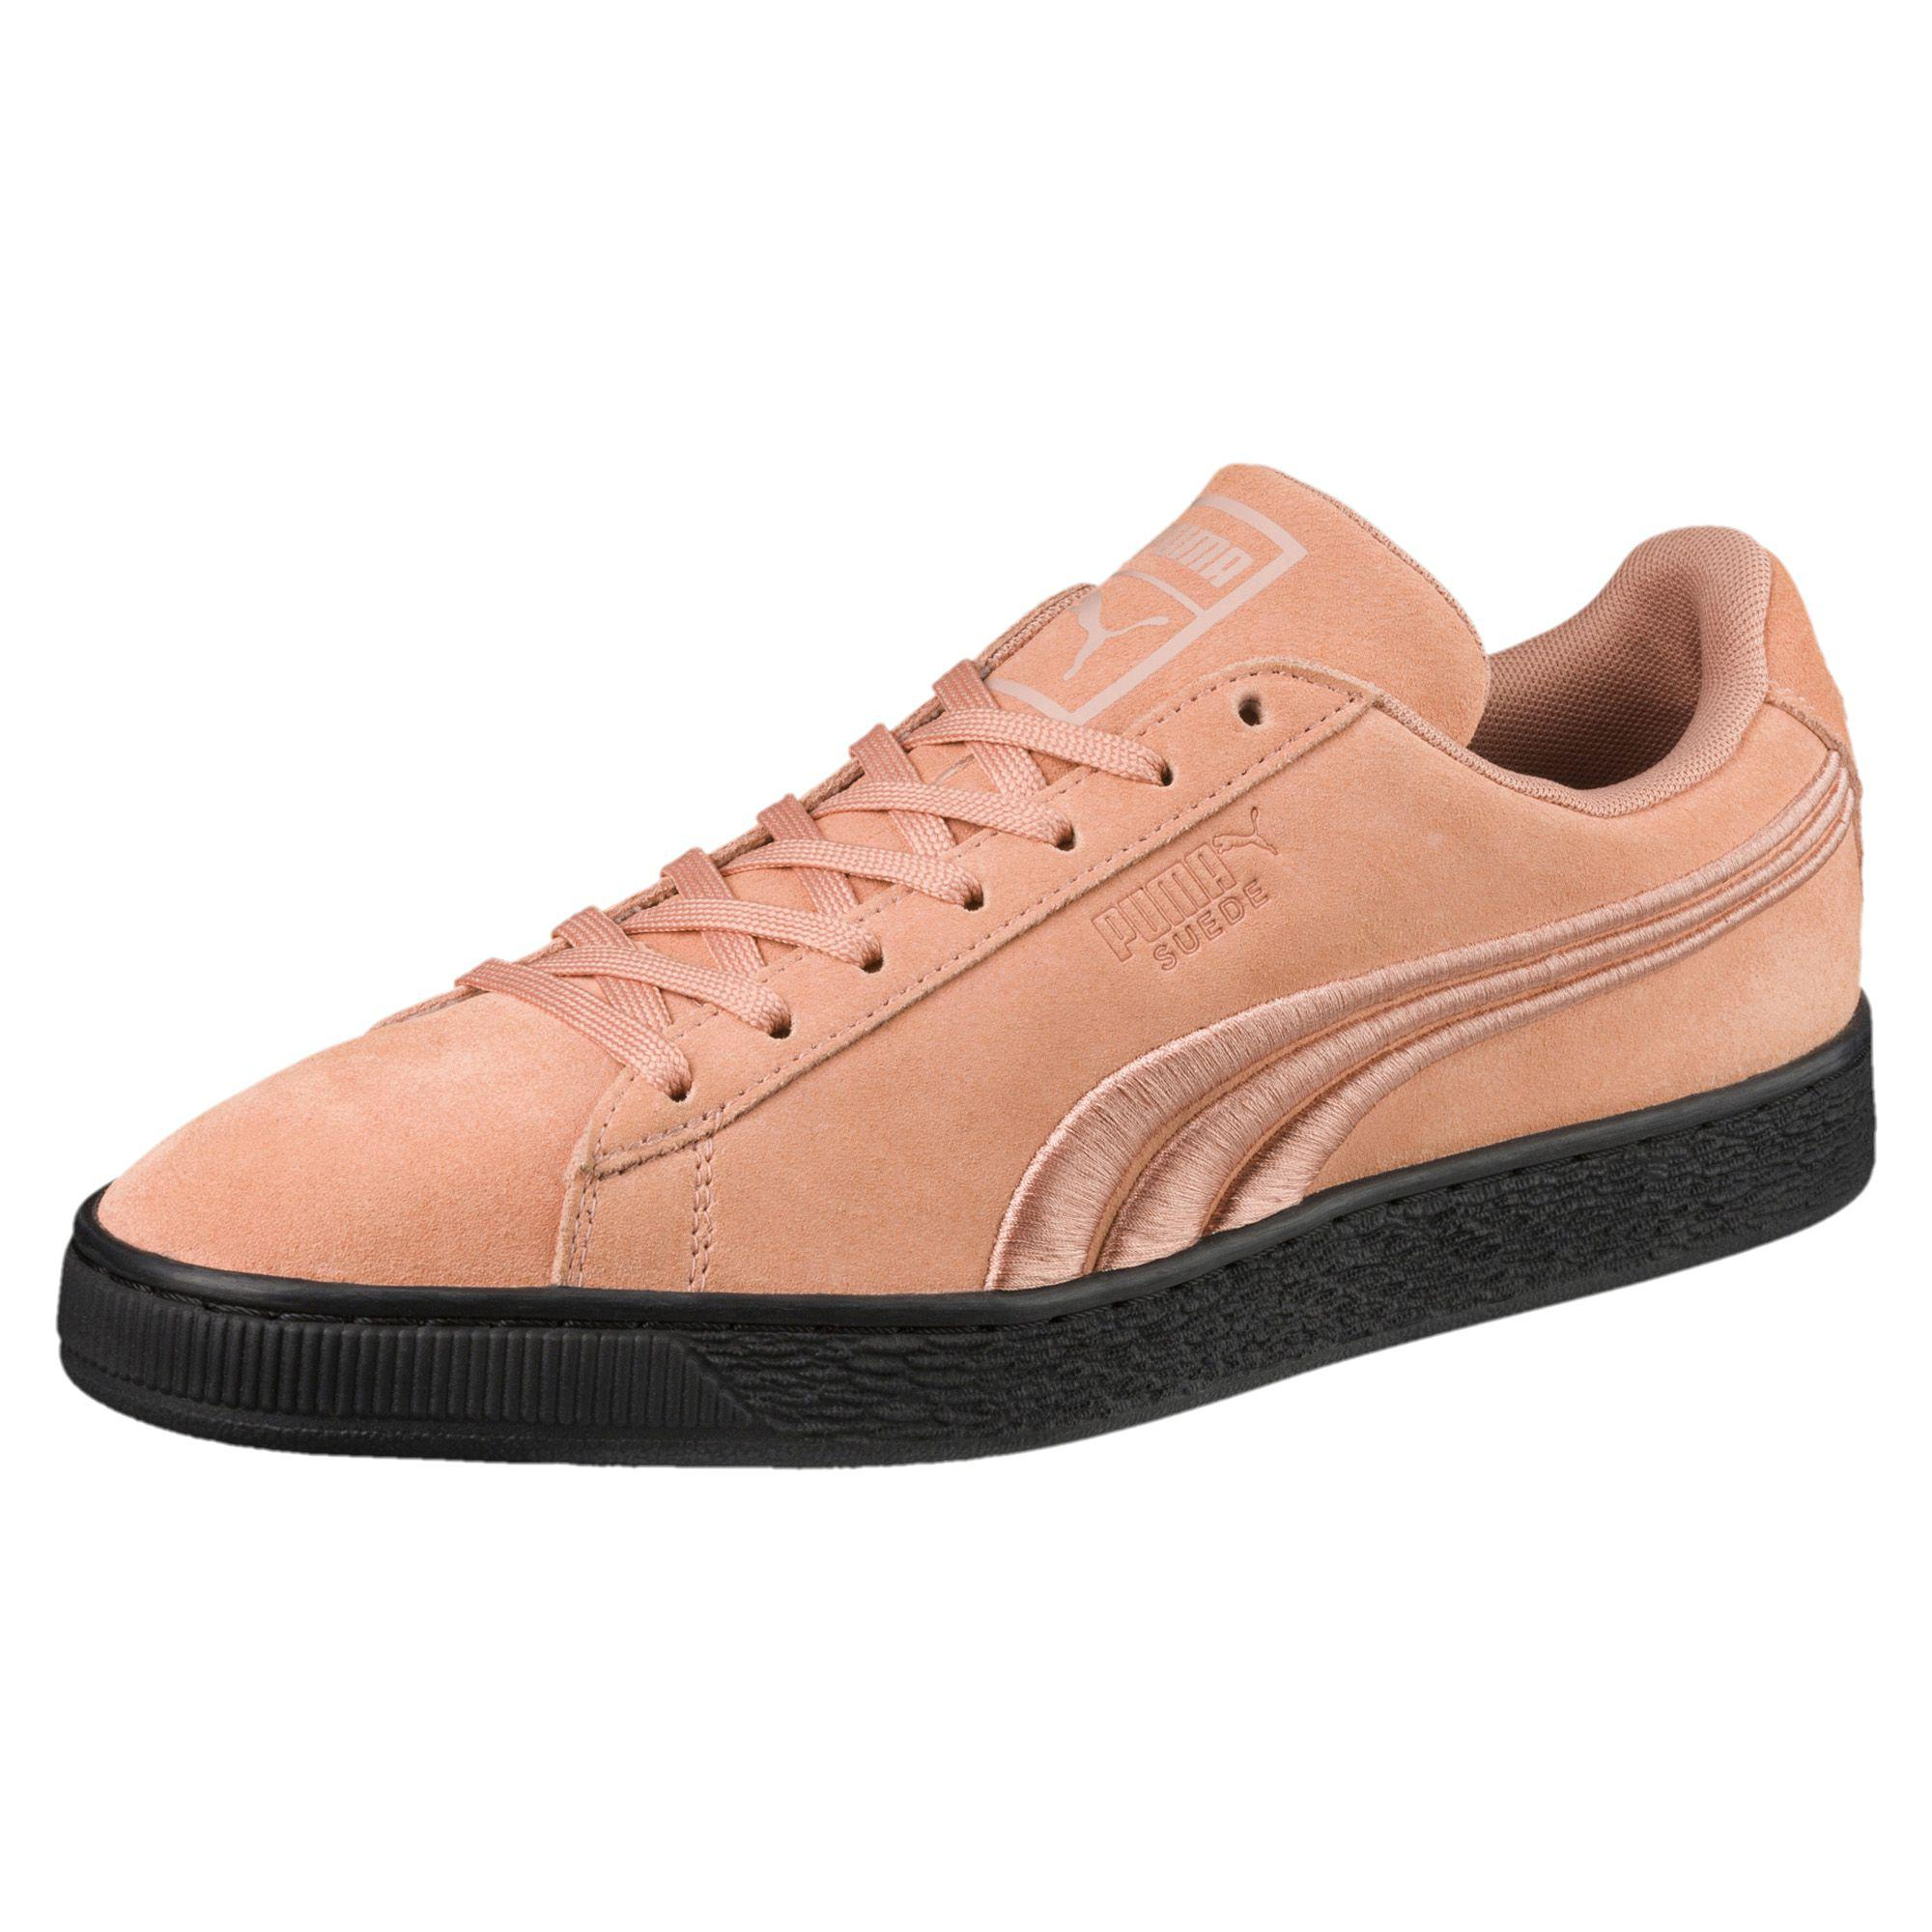 f16be44670 10 Us Classic 5 Iced Rosa Suede Badge Puma Uomo 7YqHwfz for ...